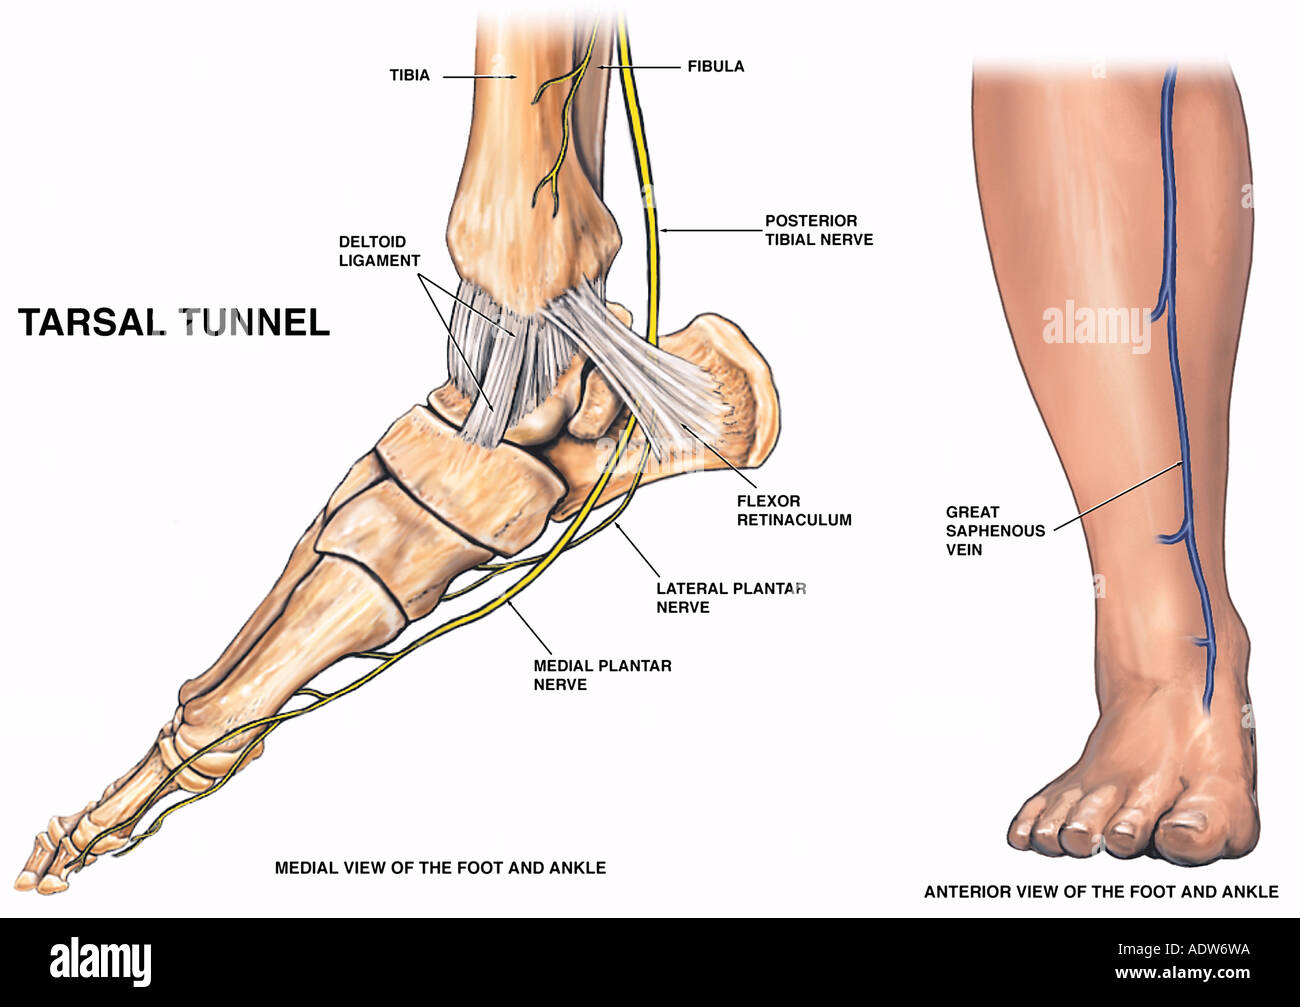 Anatomy of the Lower Leg and Foot Stock Photo: 7712281 - Alamy